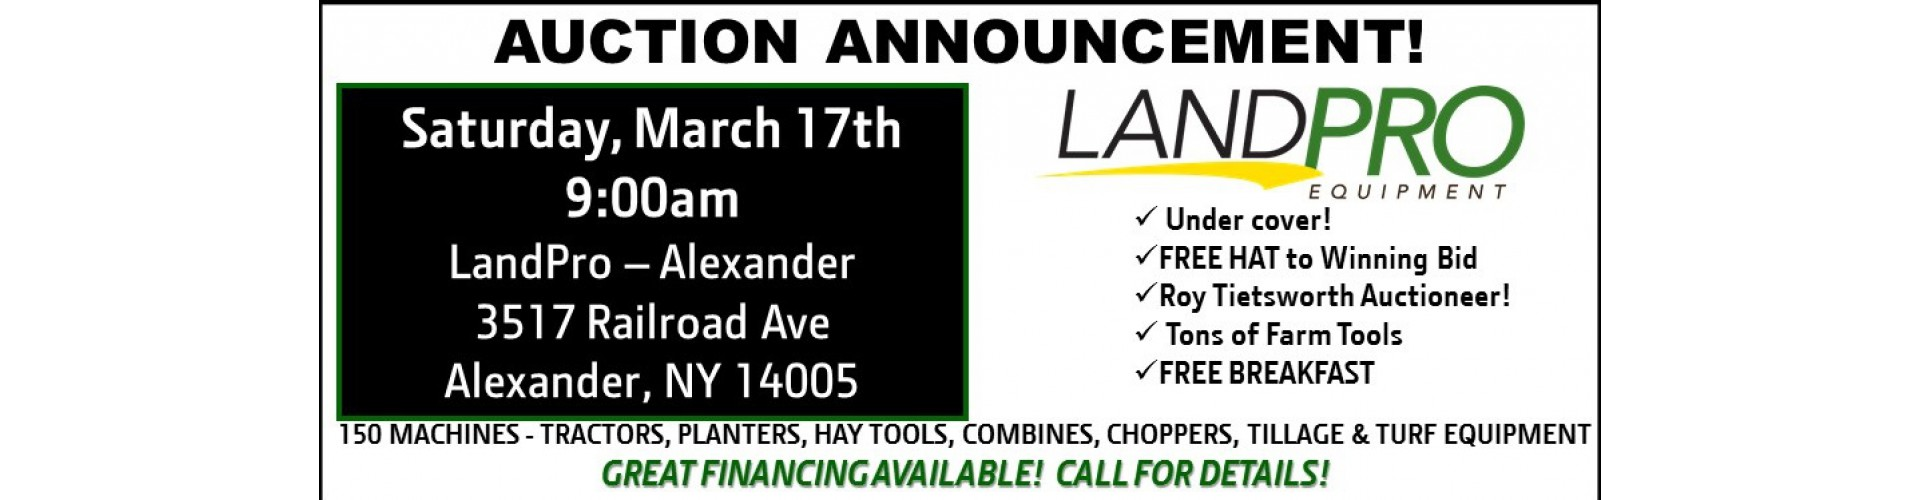 LandPro Equipment announces it's Merger Auction with 250 machines!